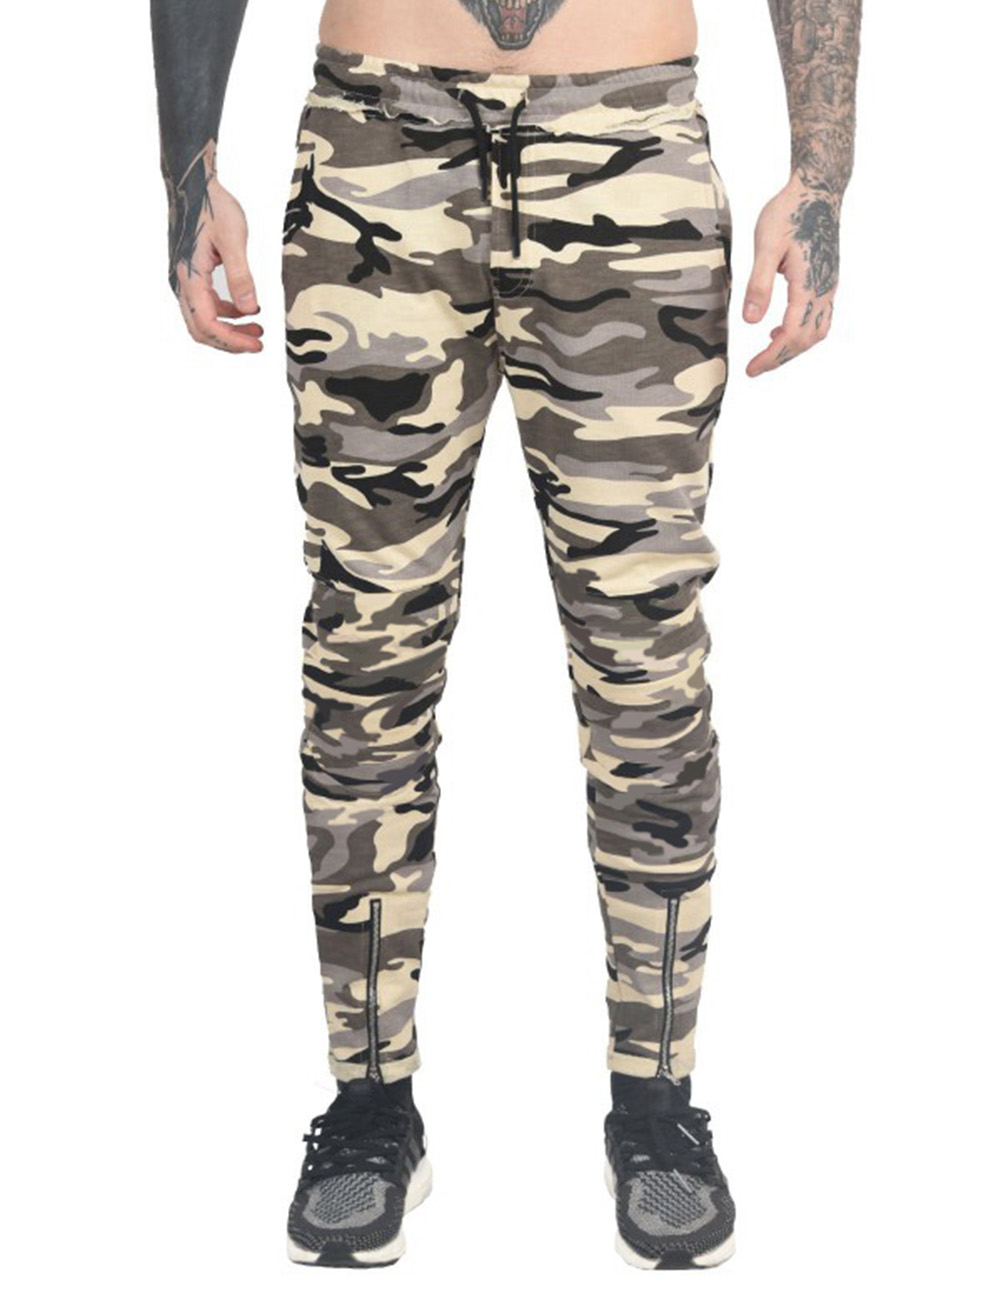 Stylish Men Camouflage Sports Trousers with Zipper Leg Opening Elastic Band Waist Long Pants Gift Yellow Camo_2XL